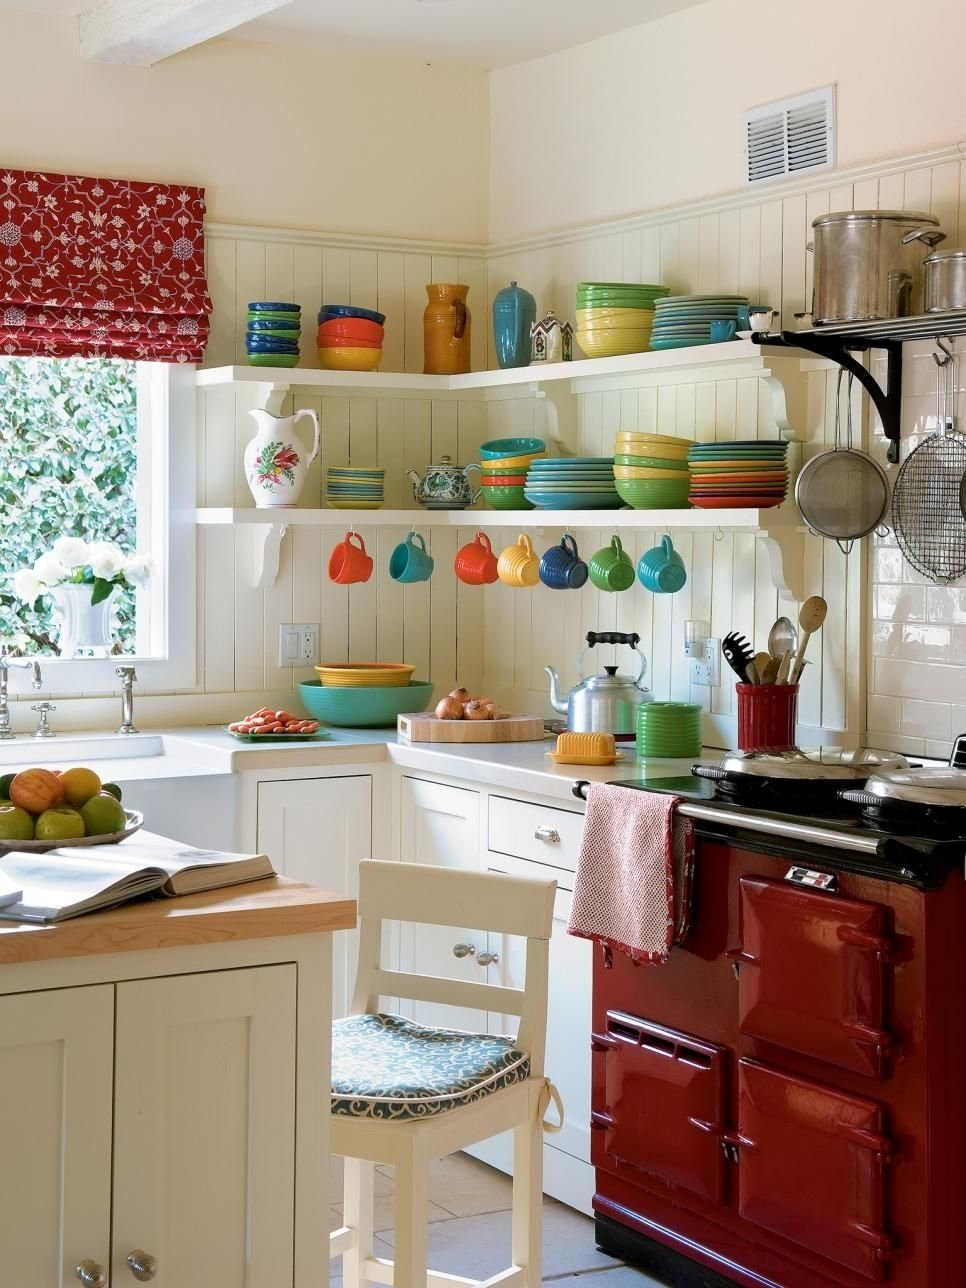 pictures of small kitchen design ideas from | small kitchen layouts